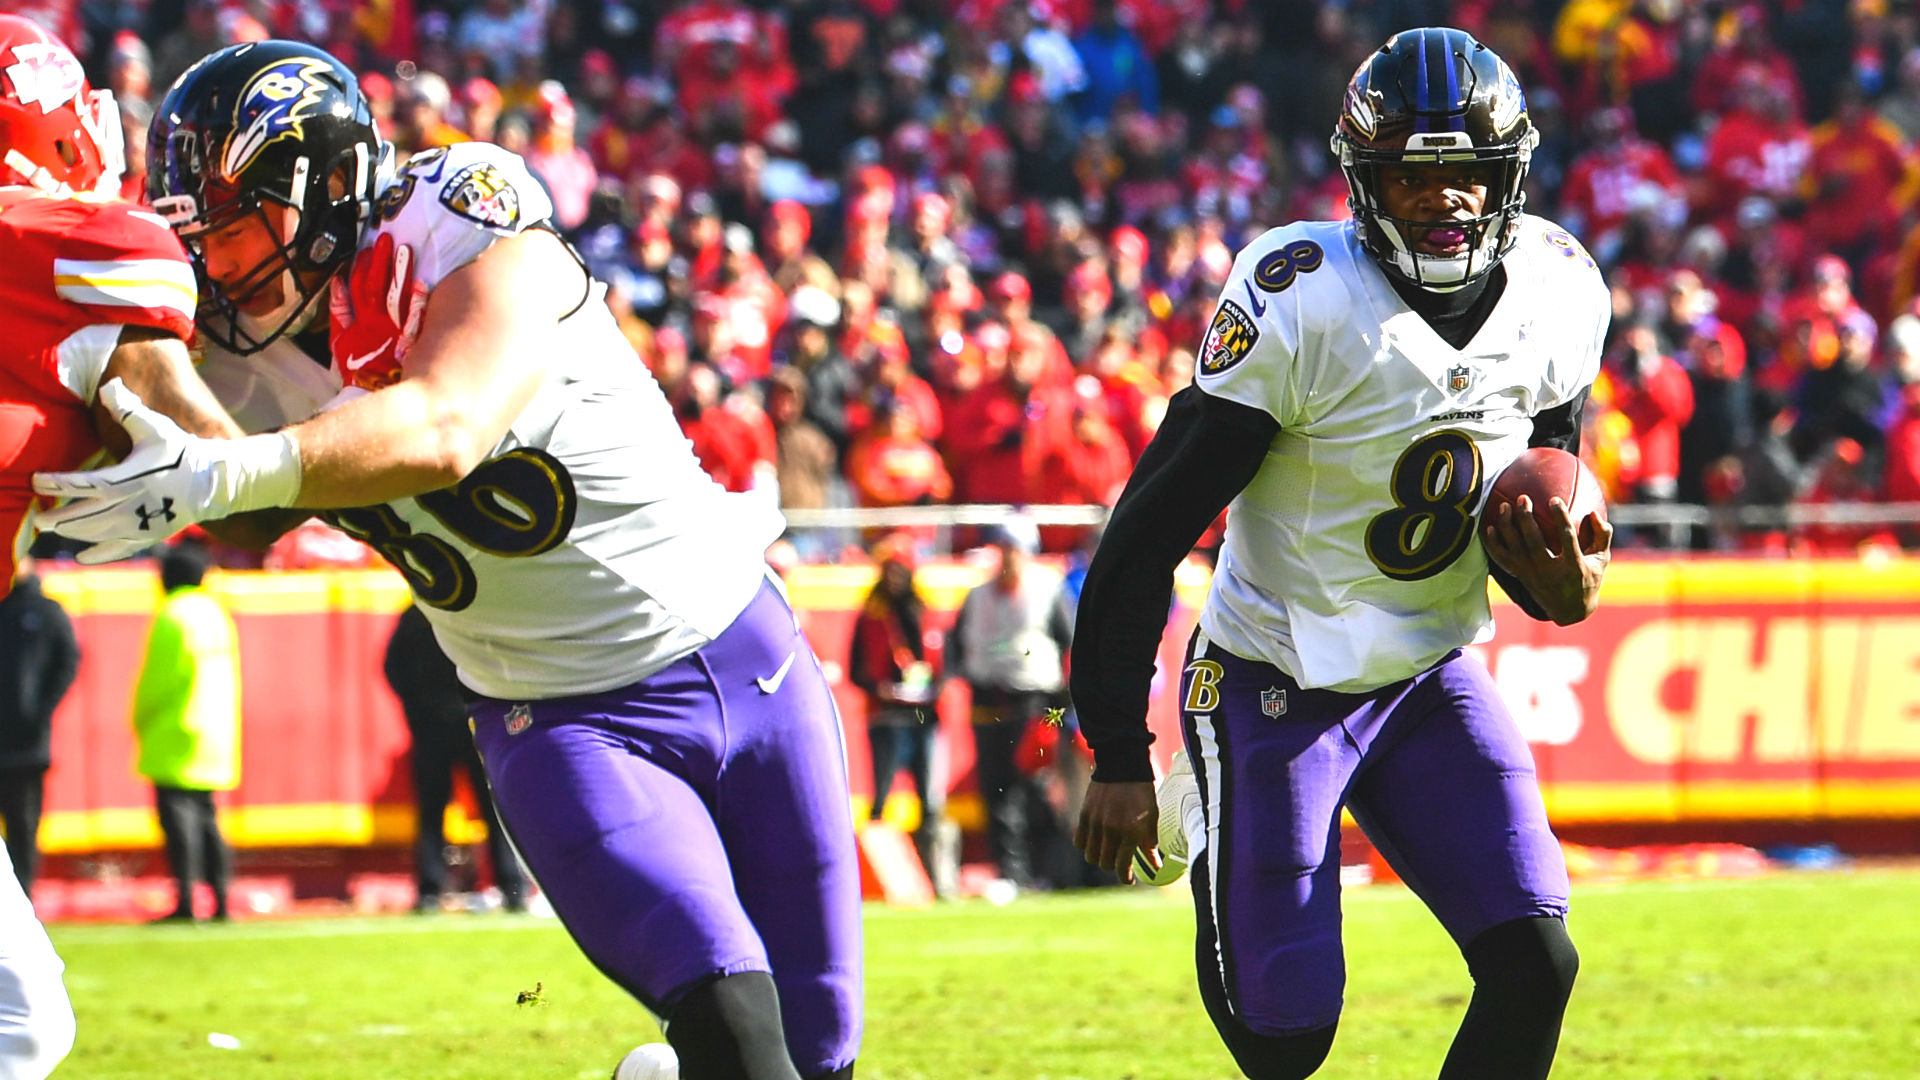 New-look Ravens didn't strike first in free agency; eyes are further down road